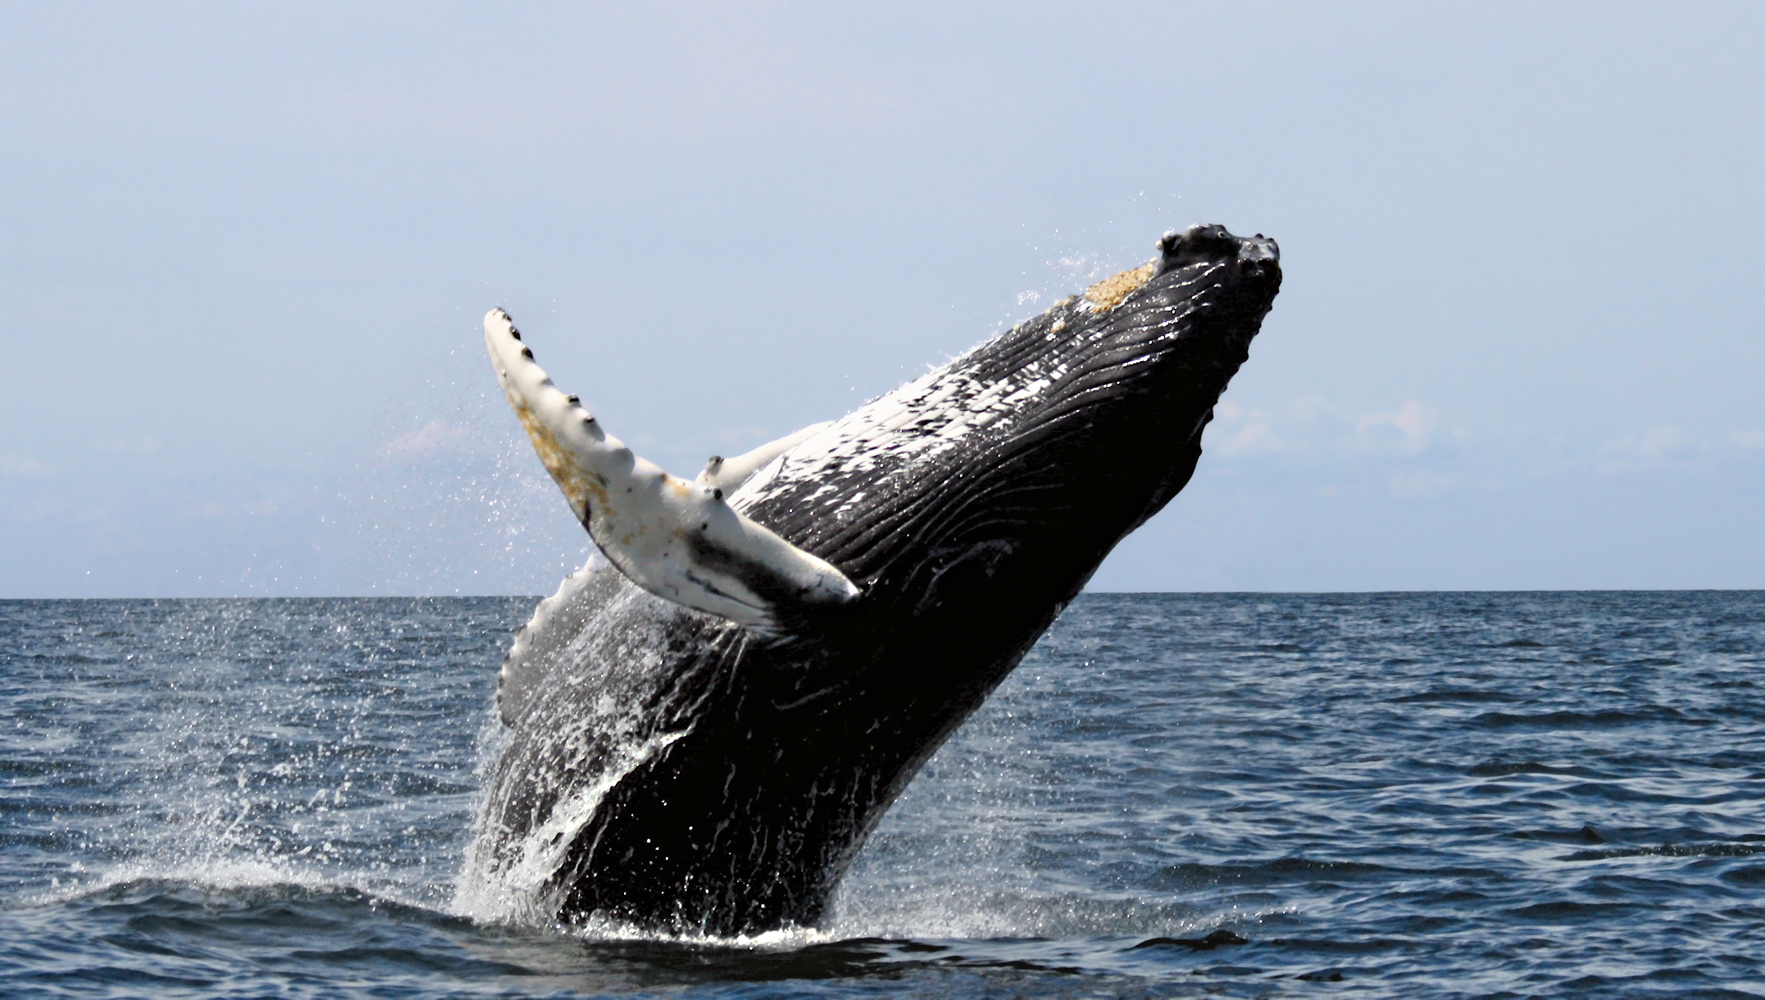 30 years for Humpback whales to recover - scientists